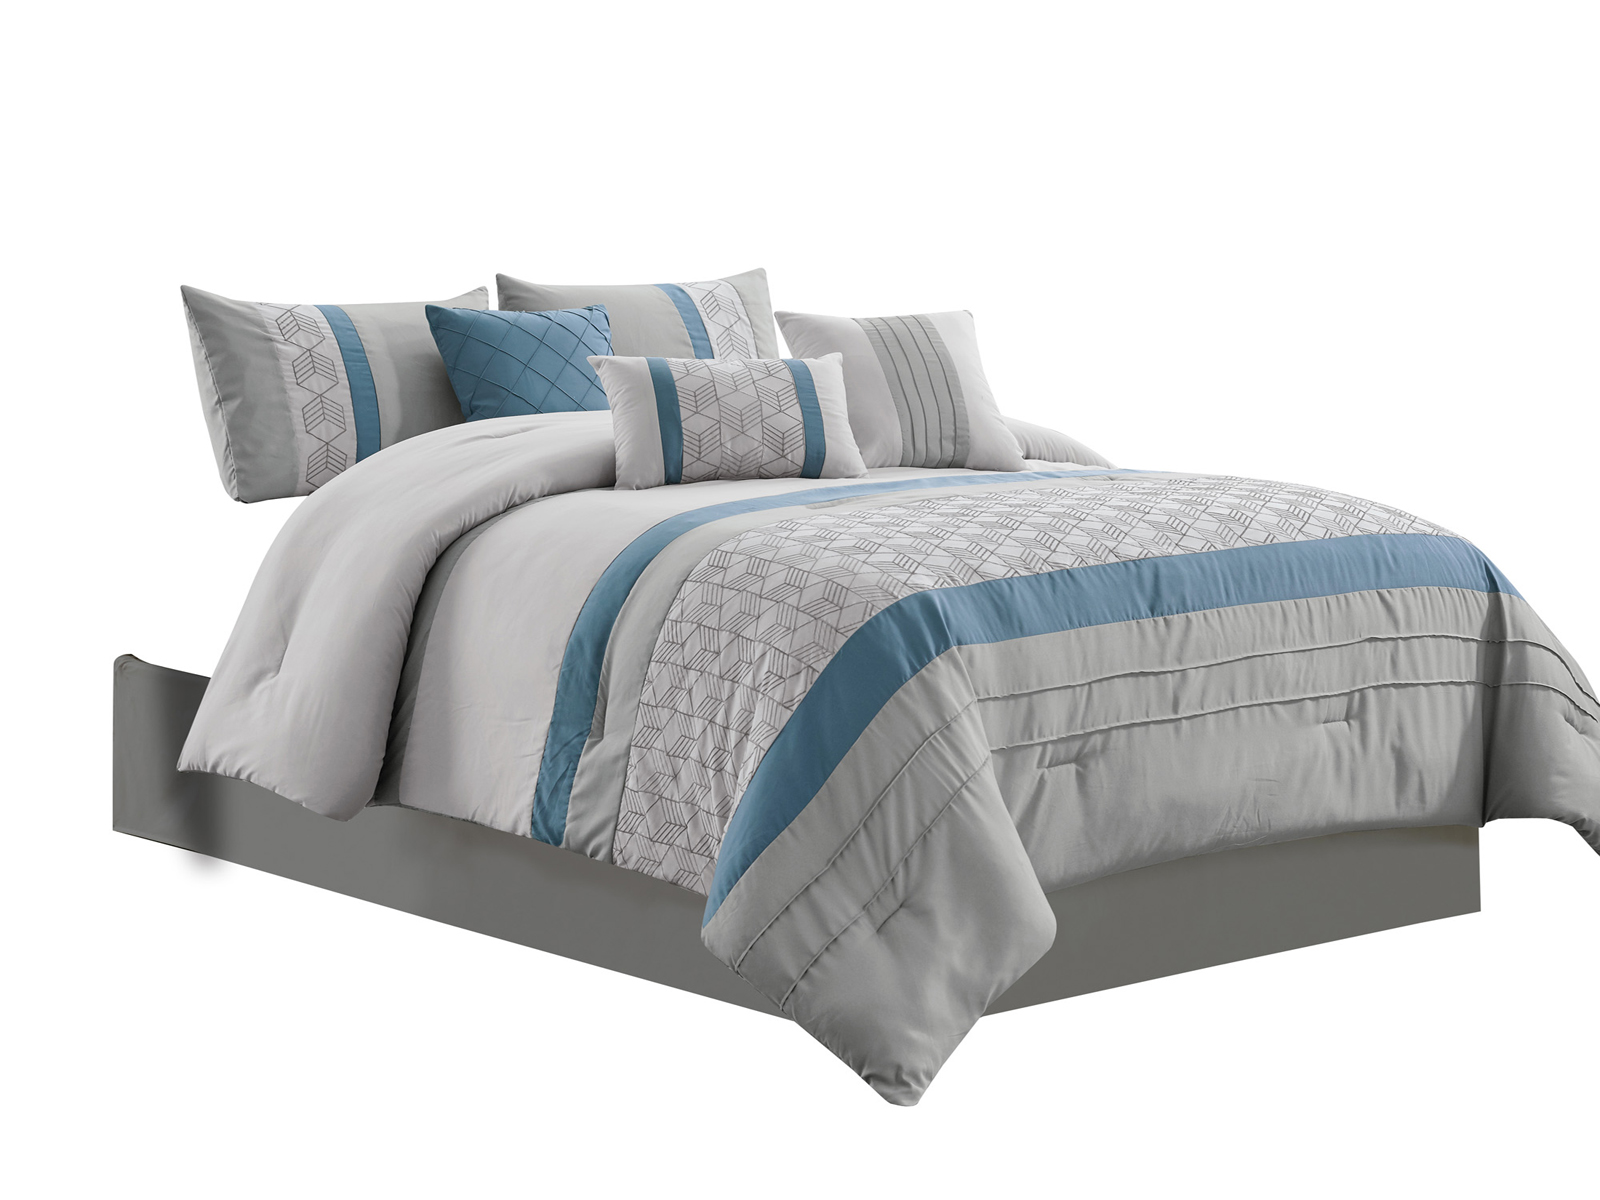 Details About 7 Pc Oliver Comforter Setdiamond Cube Chevron Geometricblue Gray Silverqueen